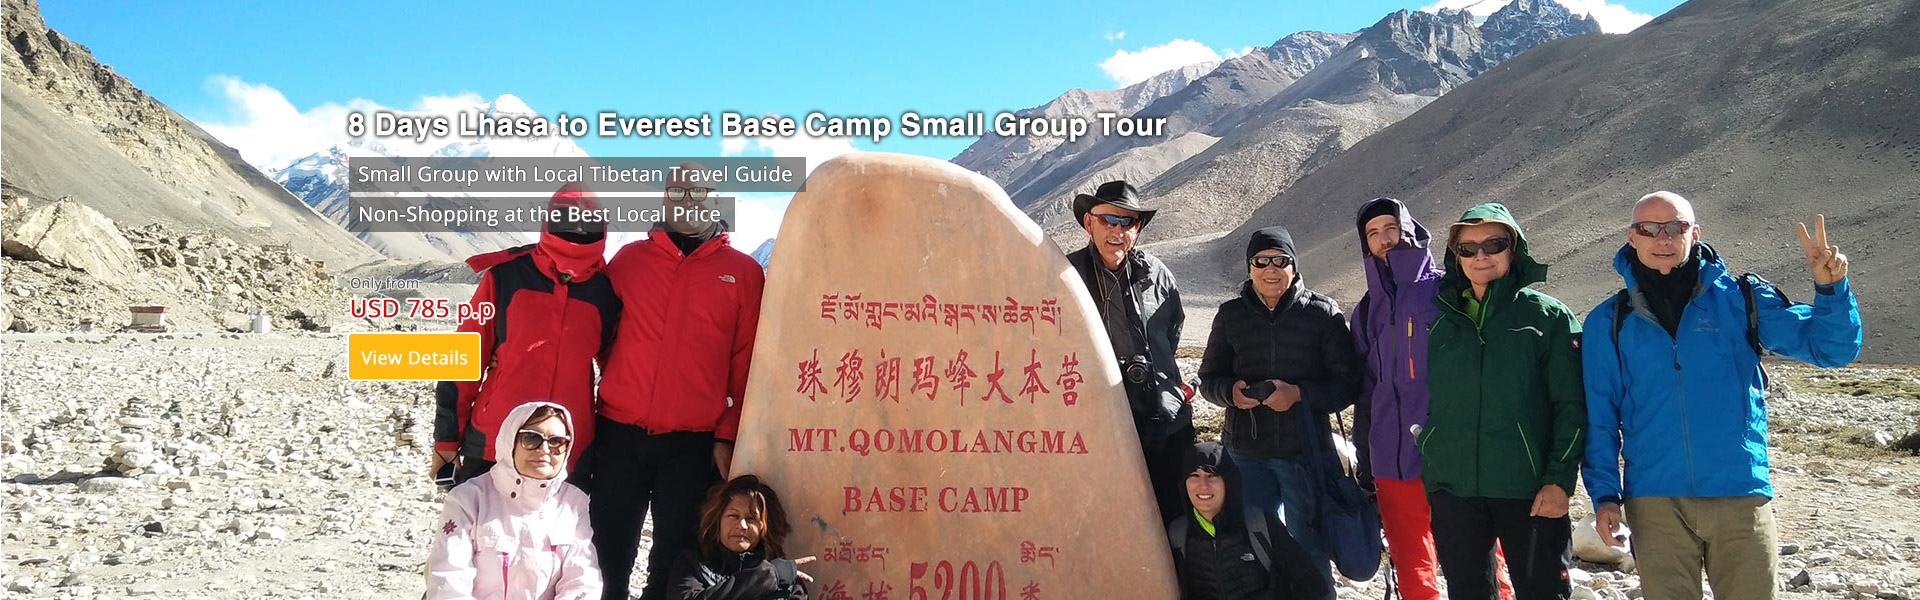 8 Days Lhasa to Everest Base Camp Group Tour